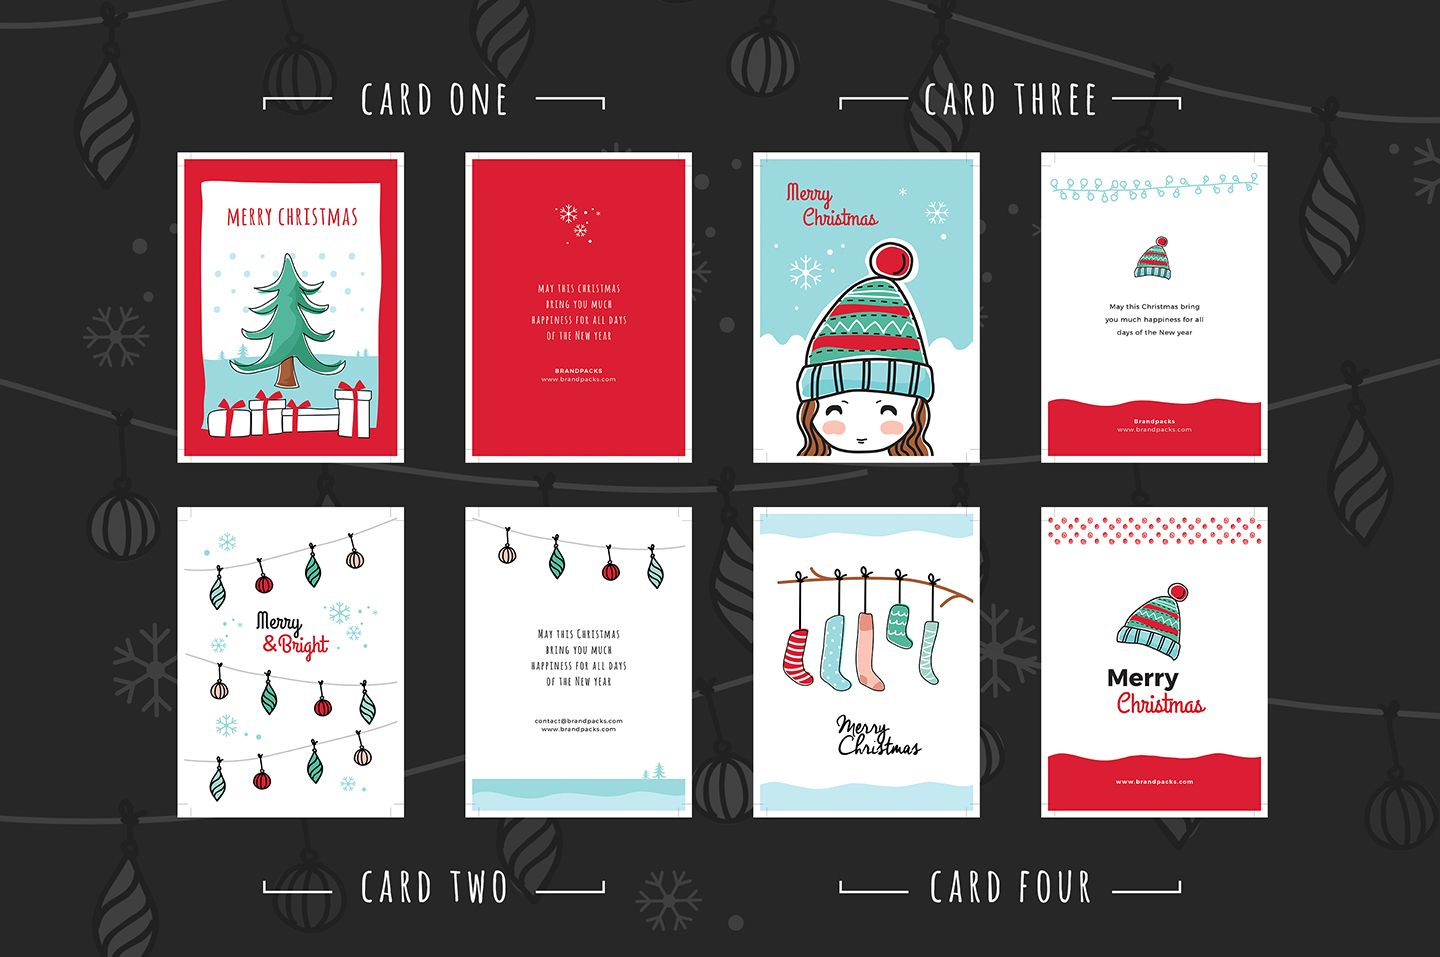 The Astounding Free Ecard Template Zohre Horizonconsulting Co Intended Photoshop Christmas Card Template Birthday Card Template Christmas Photo Card Template